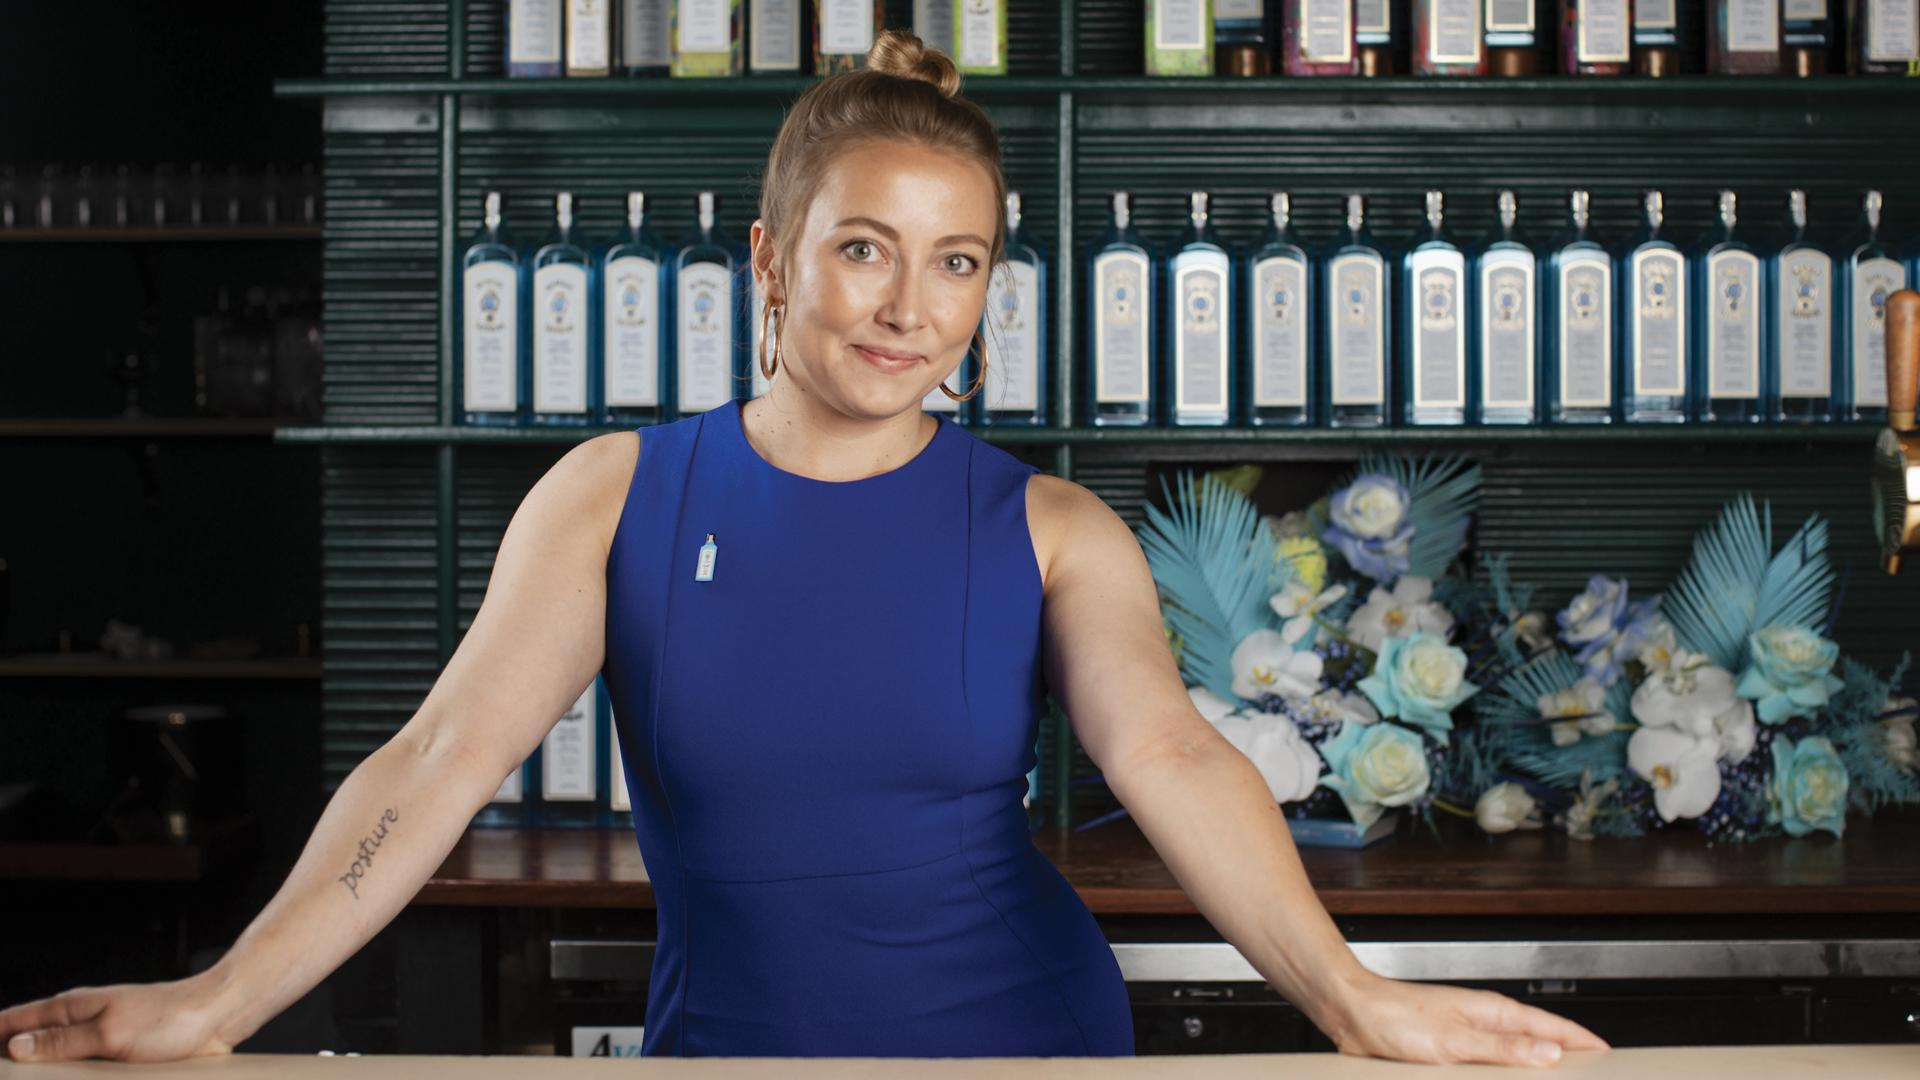 Cocktail recipes and tips from Toronto's best bartenders | Marta Ess of Chantecler